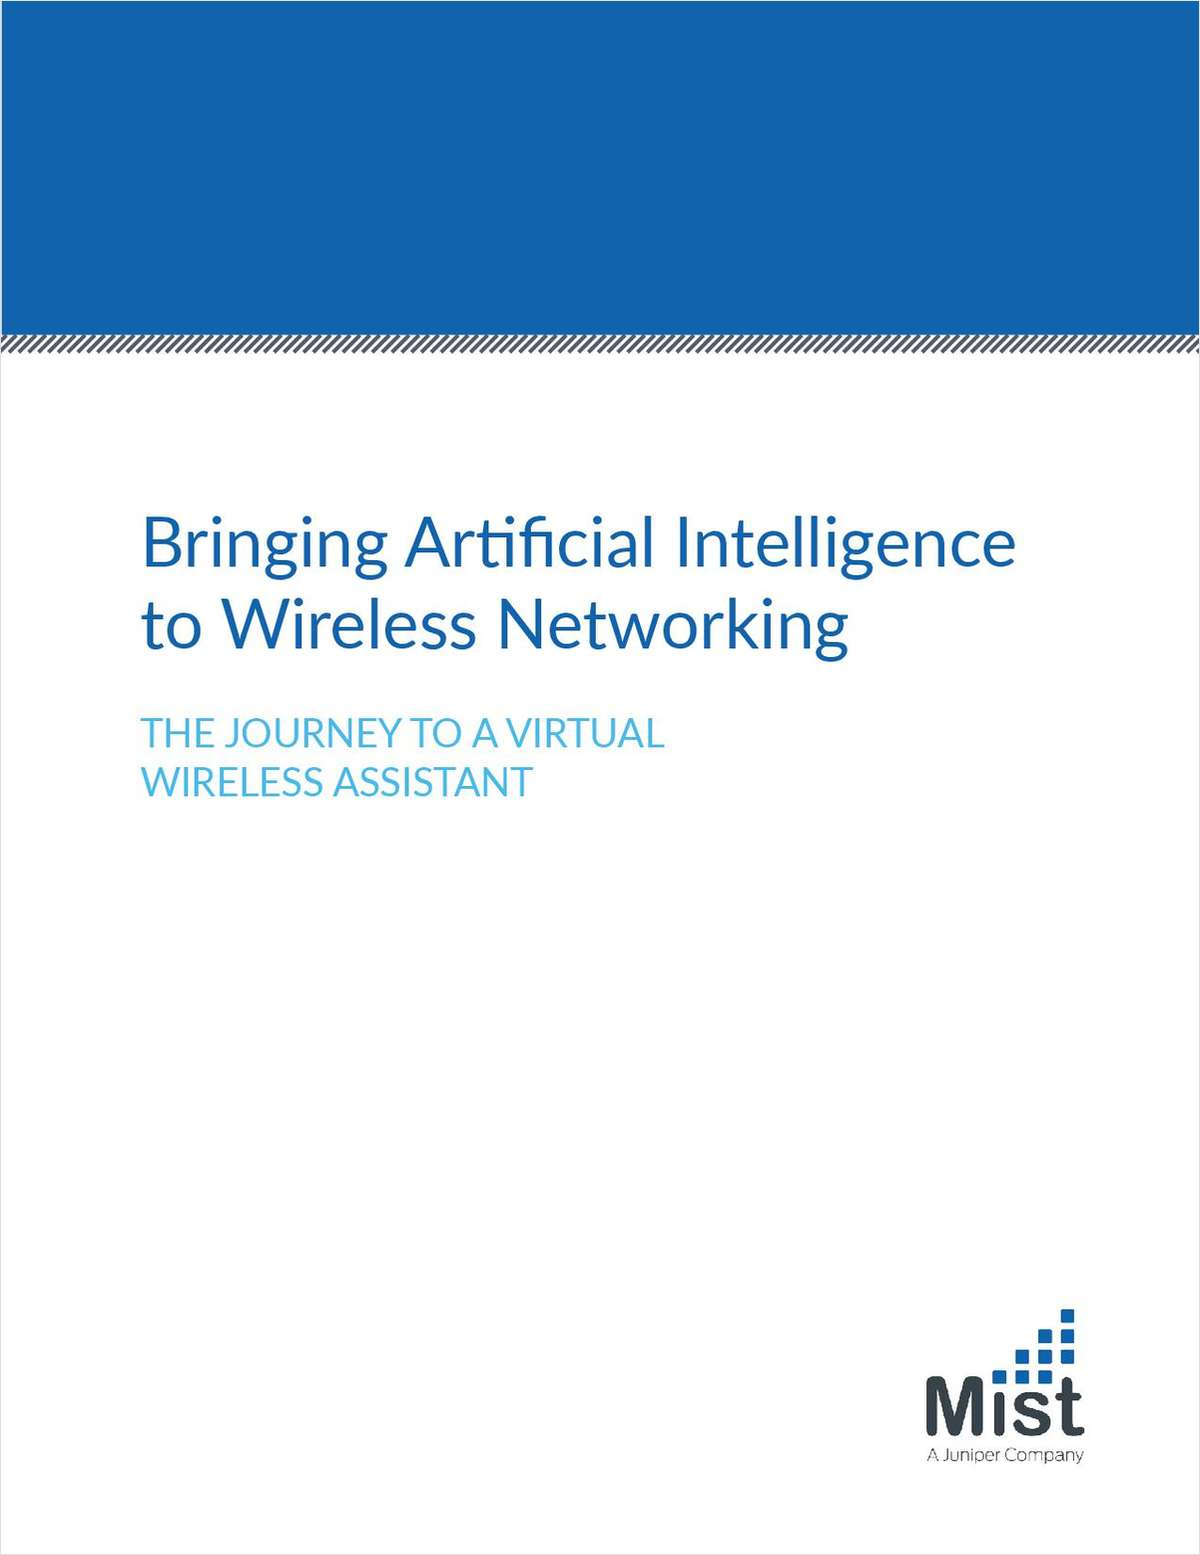 Bringing Artificial Intelligence to Wireless Networking